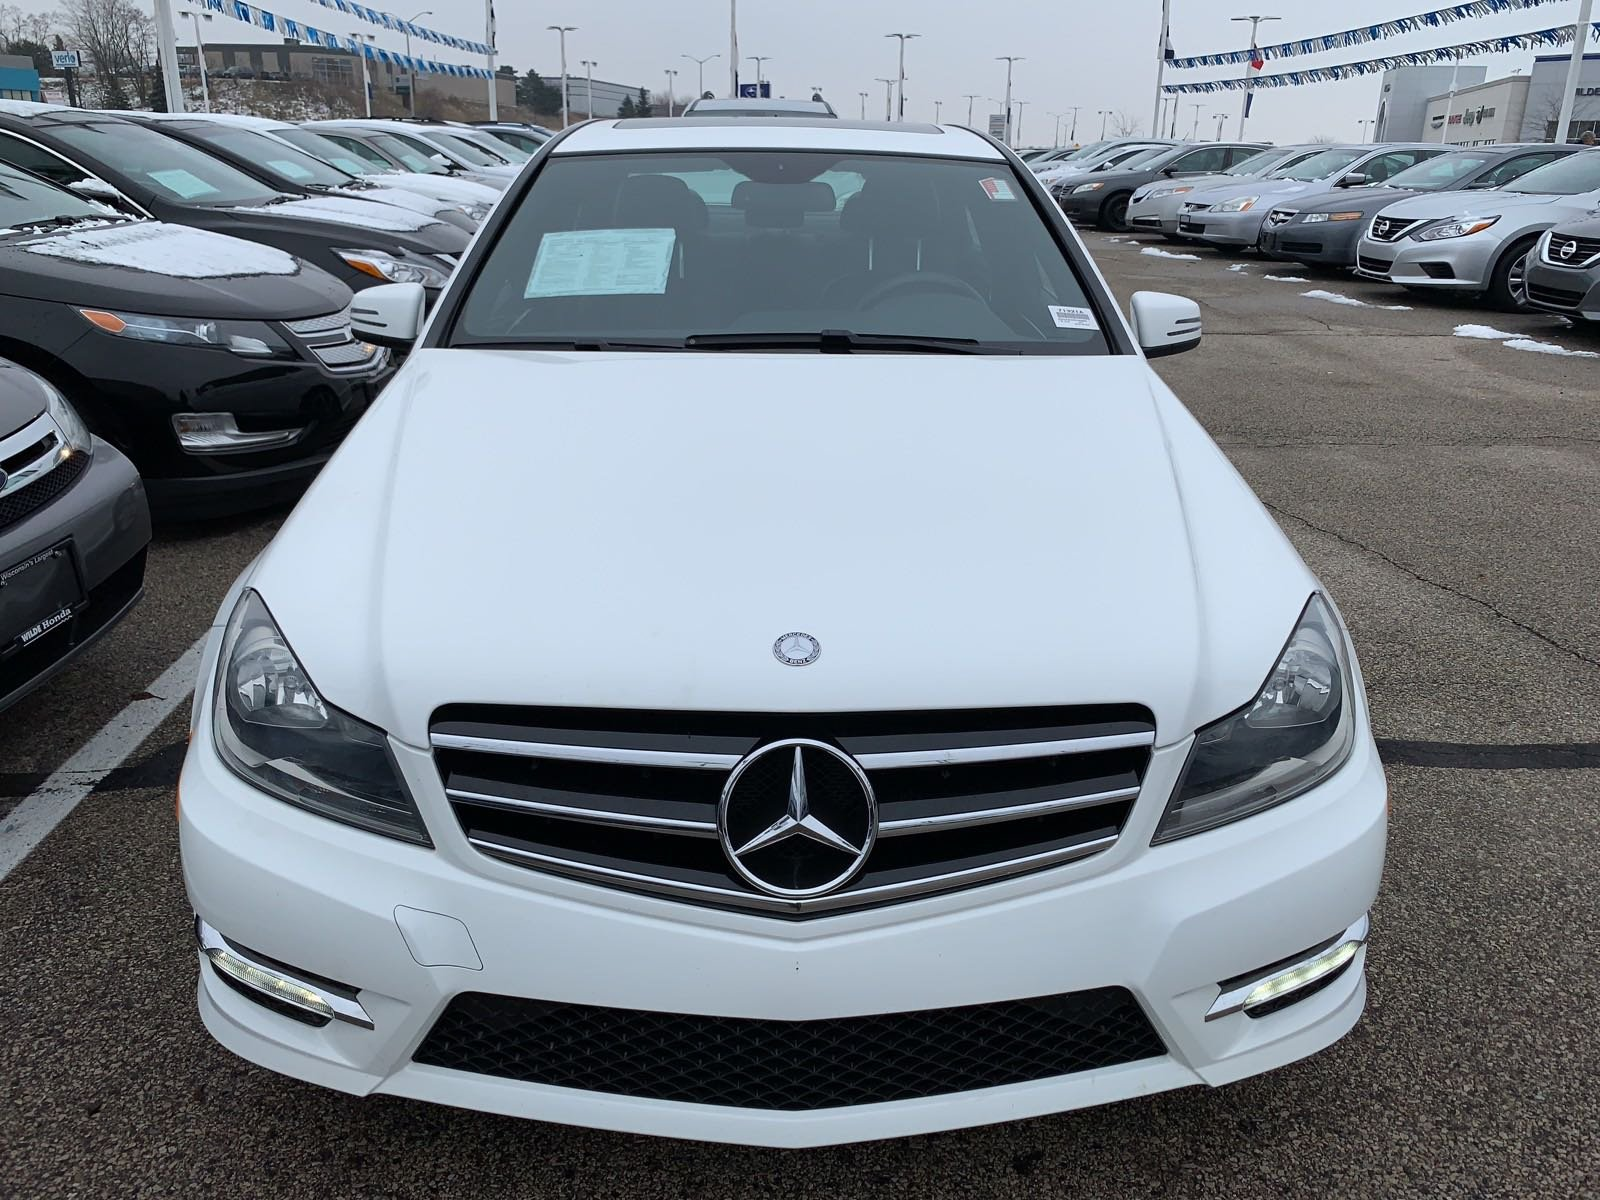 Pre Owned 2014 Mercedes Benz C Class 4DR SDN C300 4MAT 4dr Car in